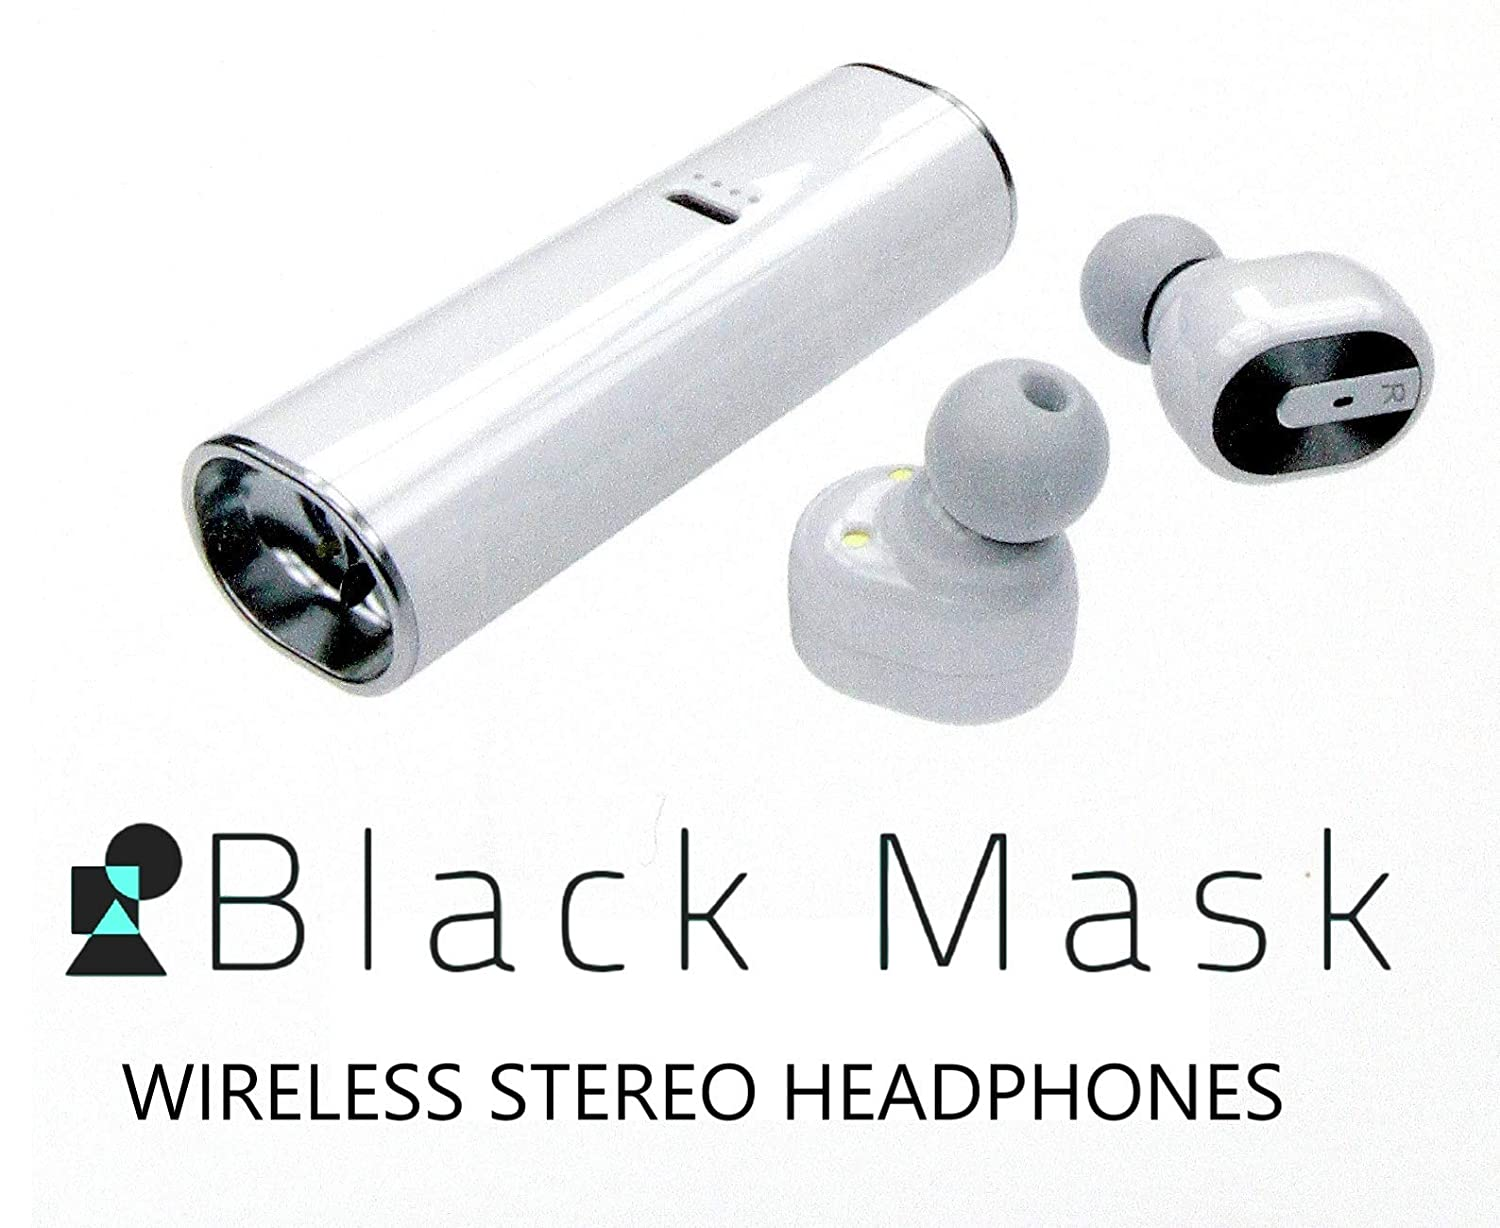 Black Mask Bluetooth Wireless Earbuds Set of 2 Easy Dual Pairing Portable Charging Station Great for Office Beach Outdoors Indoors